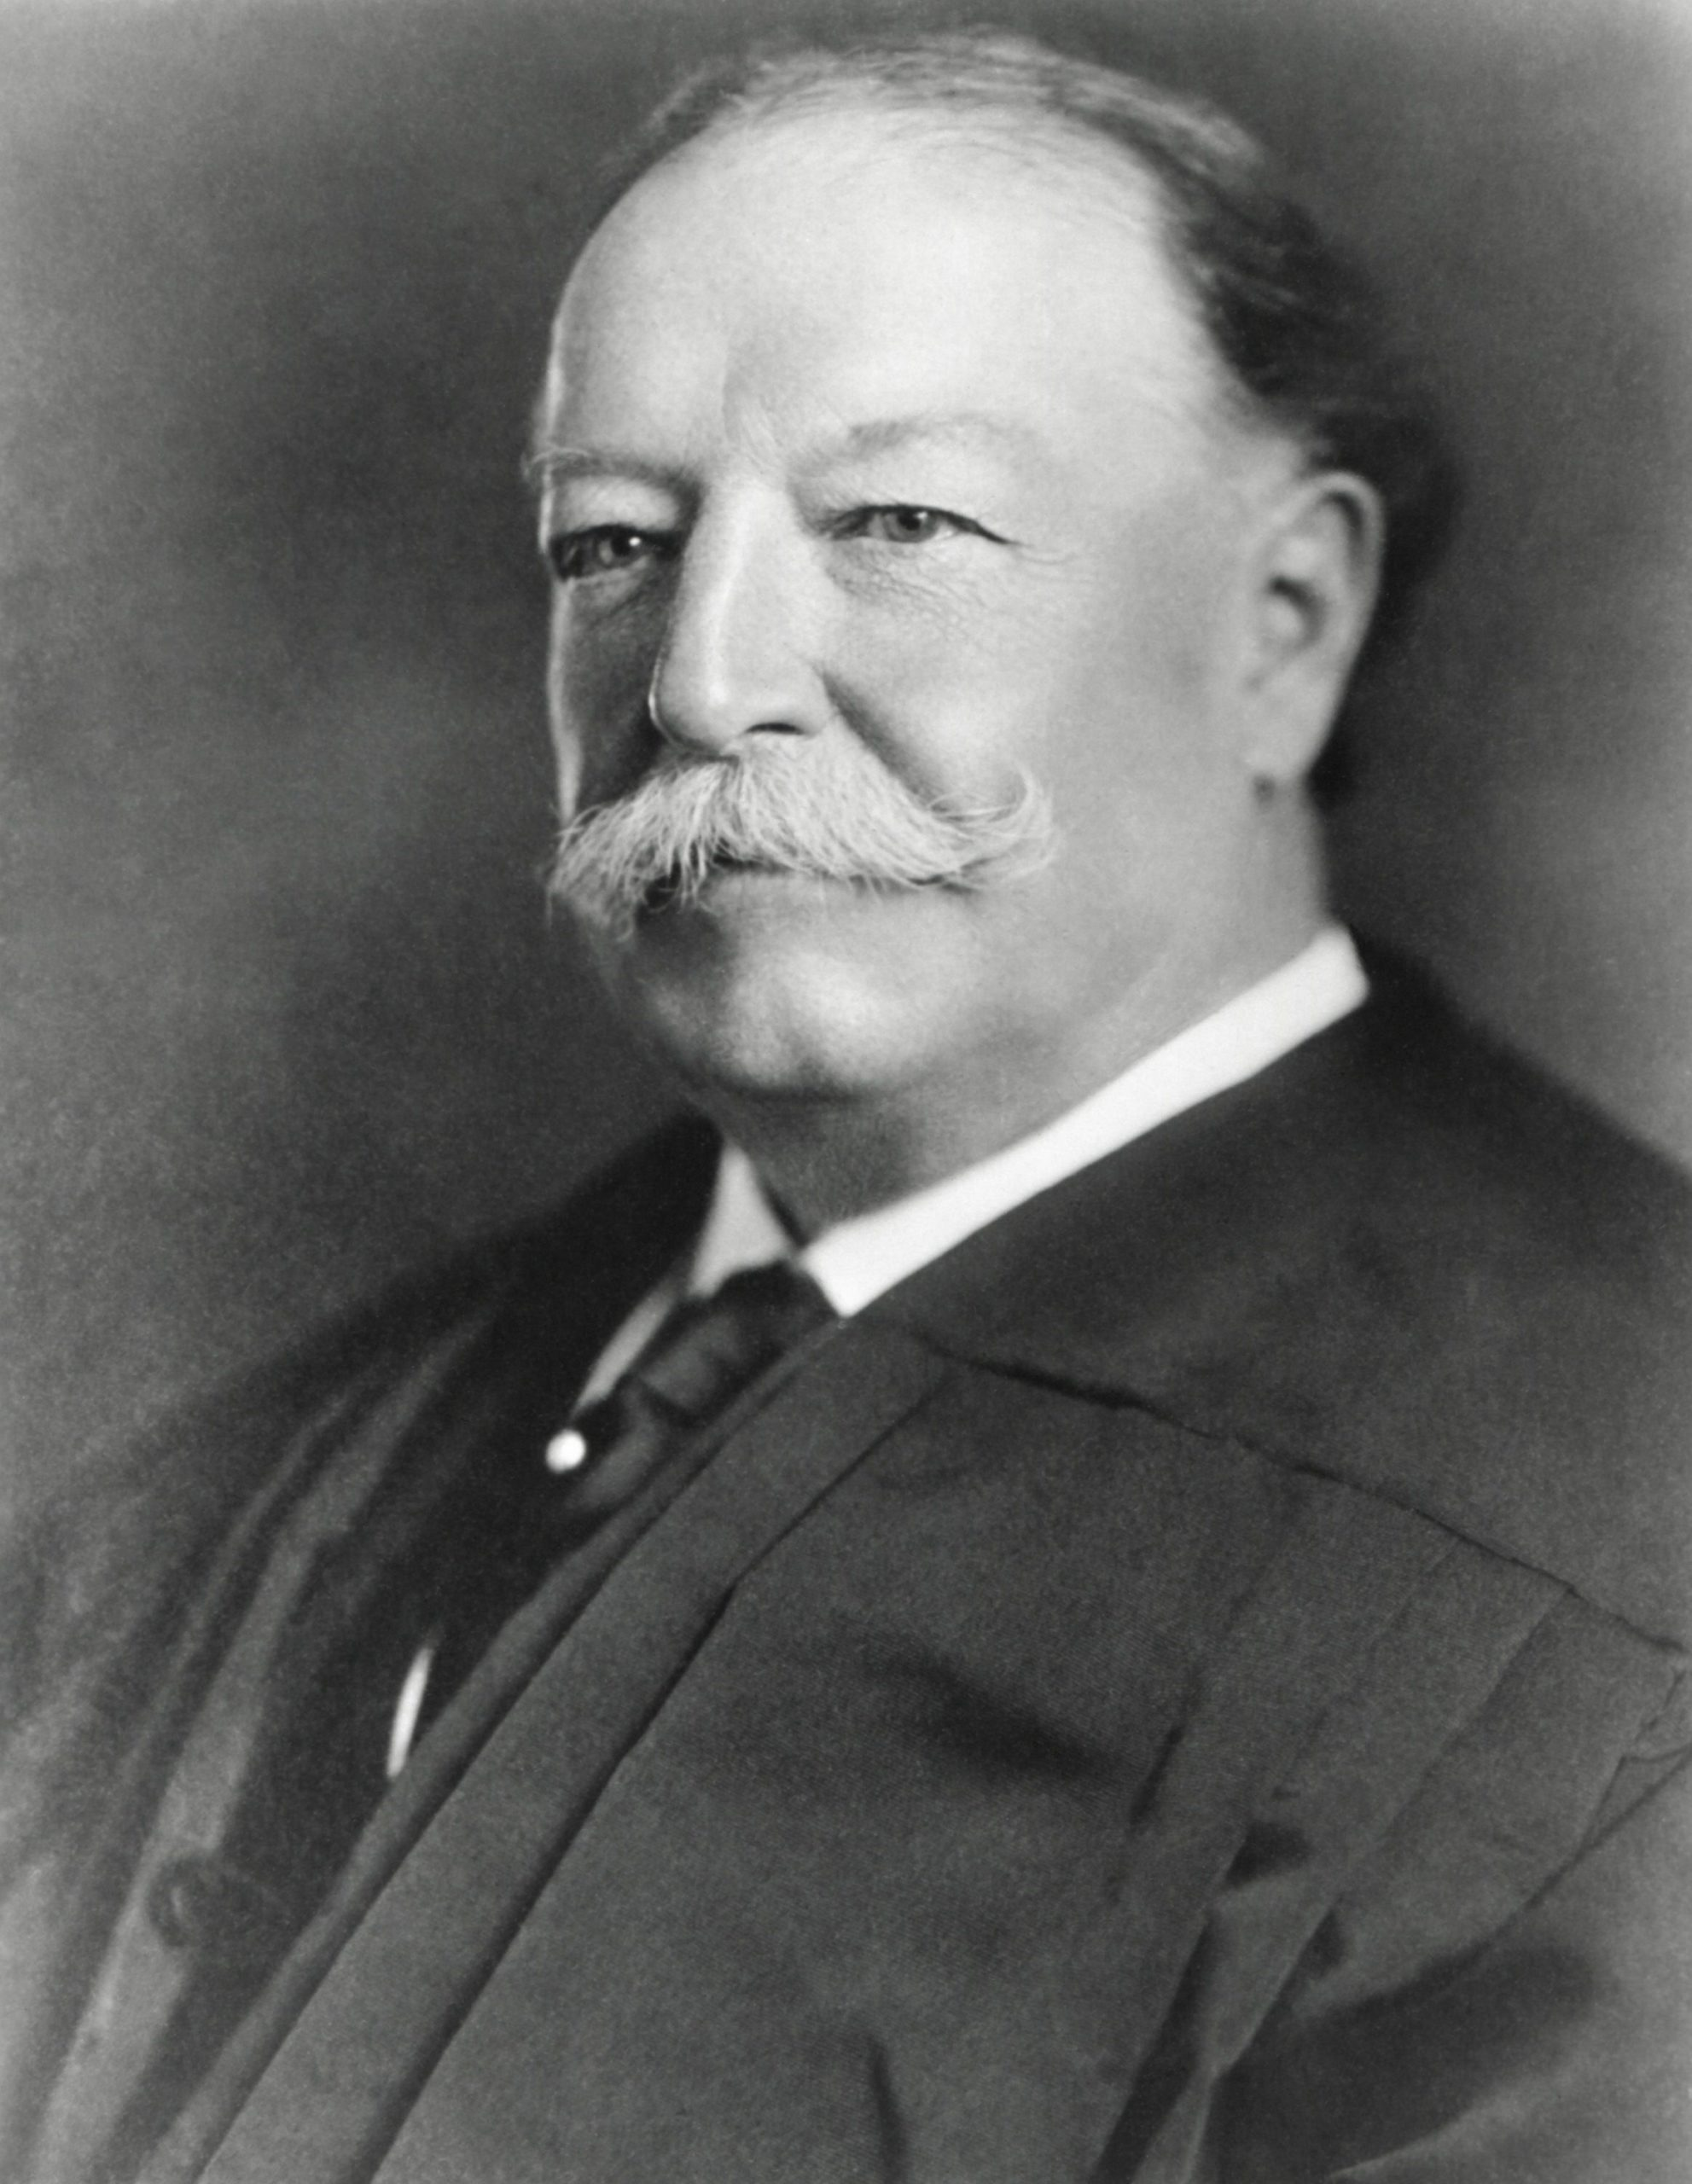 He was the 27th president of the United States and the tenth Chief Justice of the United States, the only person to have held both offices.  Presidential term: March 4, 1909 – March 4, 1913